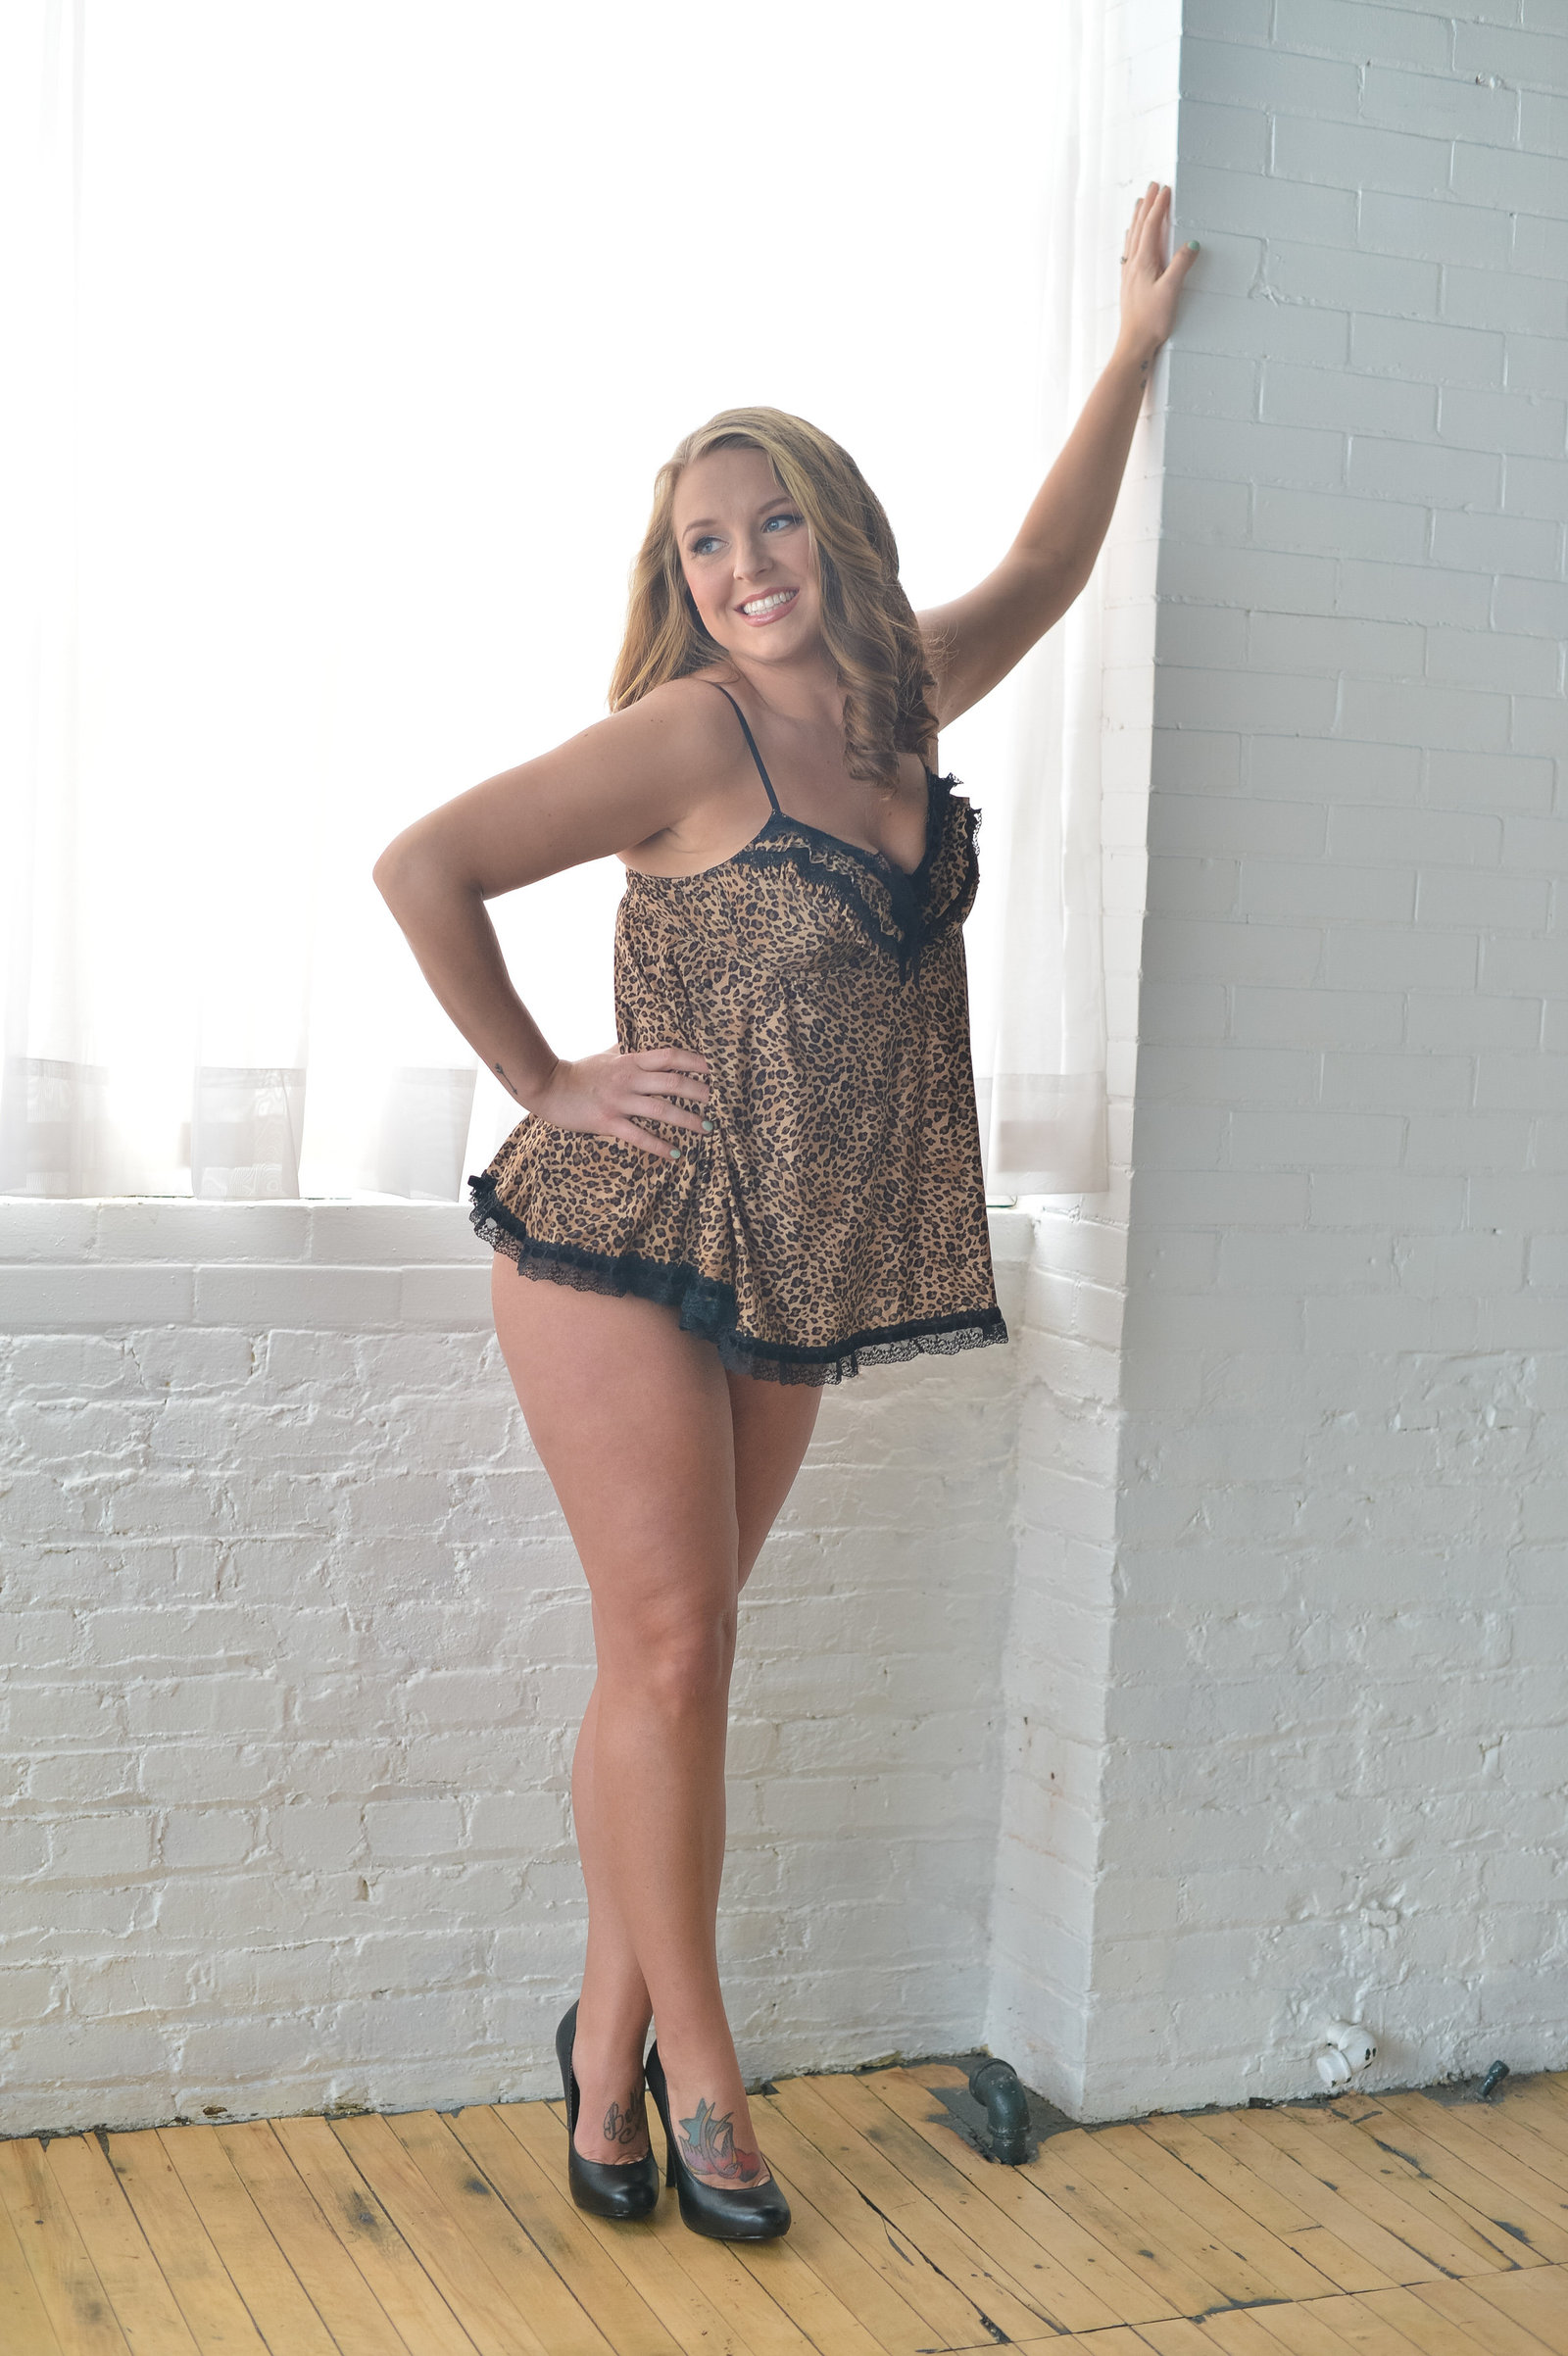 Boudoir Louisville - Boudoir Photography Studio - Lexington, Cincinnati & Indianapolis-410